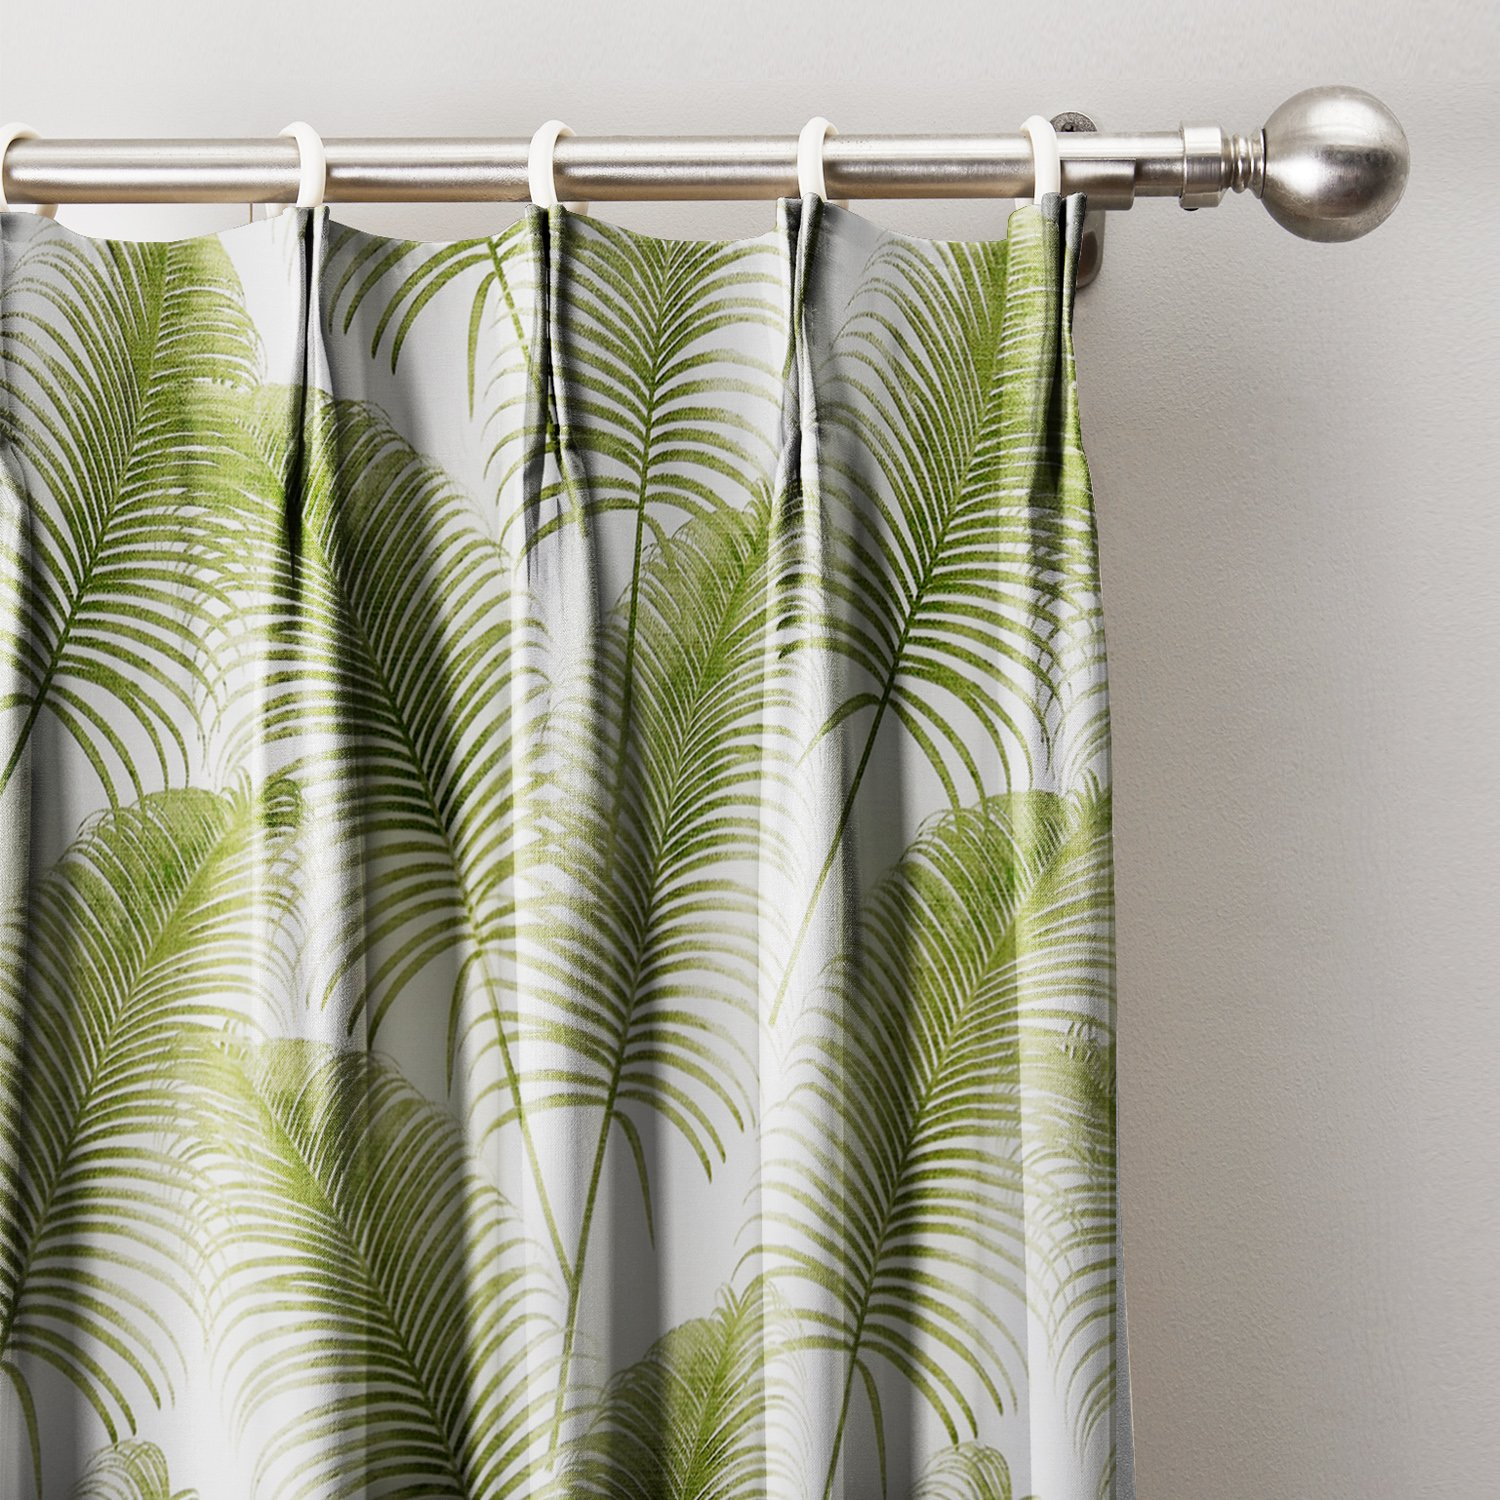 Green Leaves Print Curtain 120''W x 96''L, Pinch Pleat Blackout Lining Darpes Panel For Bedroom Living Room Hotel Restaurant (1 Panel)